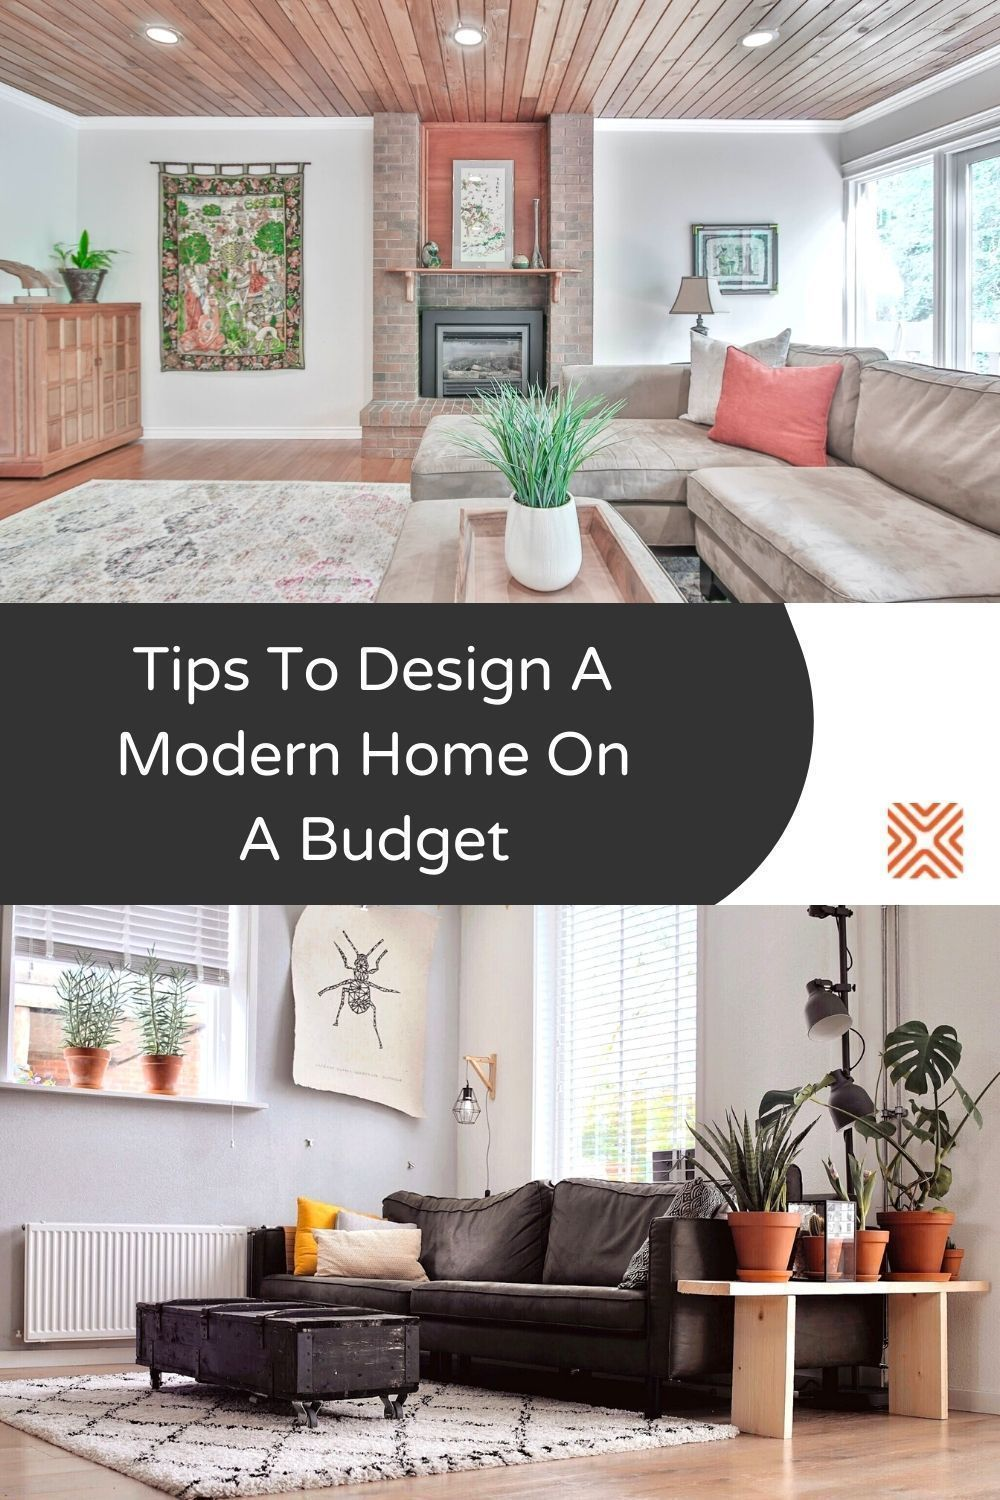 Tips To Design A Home With Modern Interiors Within A Budget Eclectic Interior Design Traditional Interior Design Interior